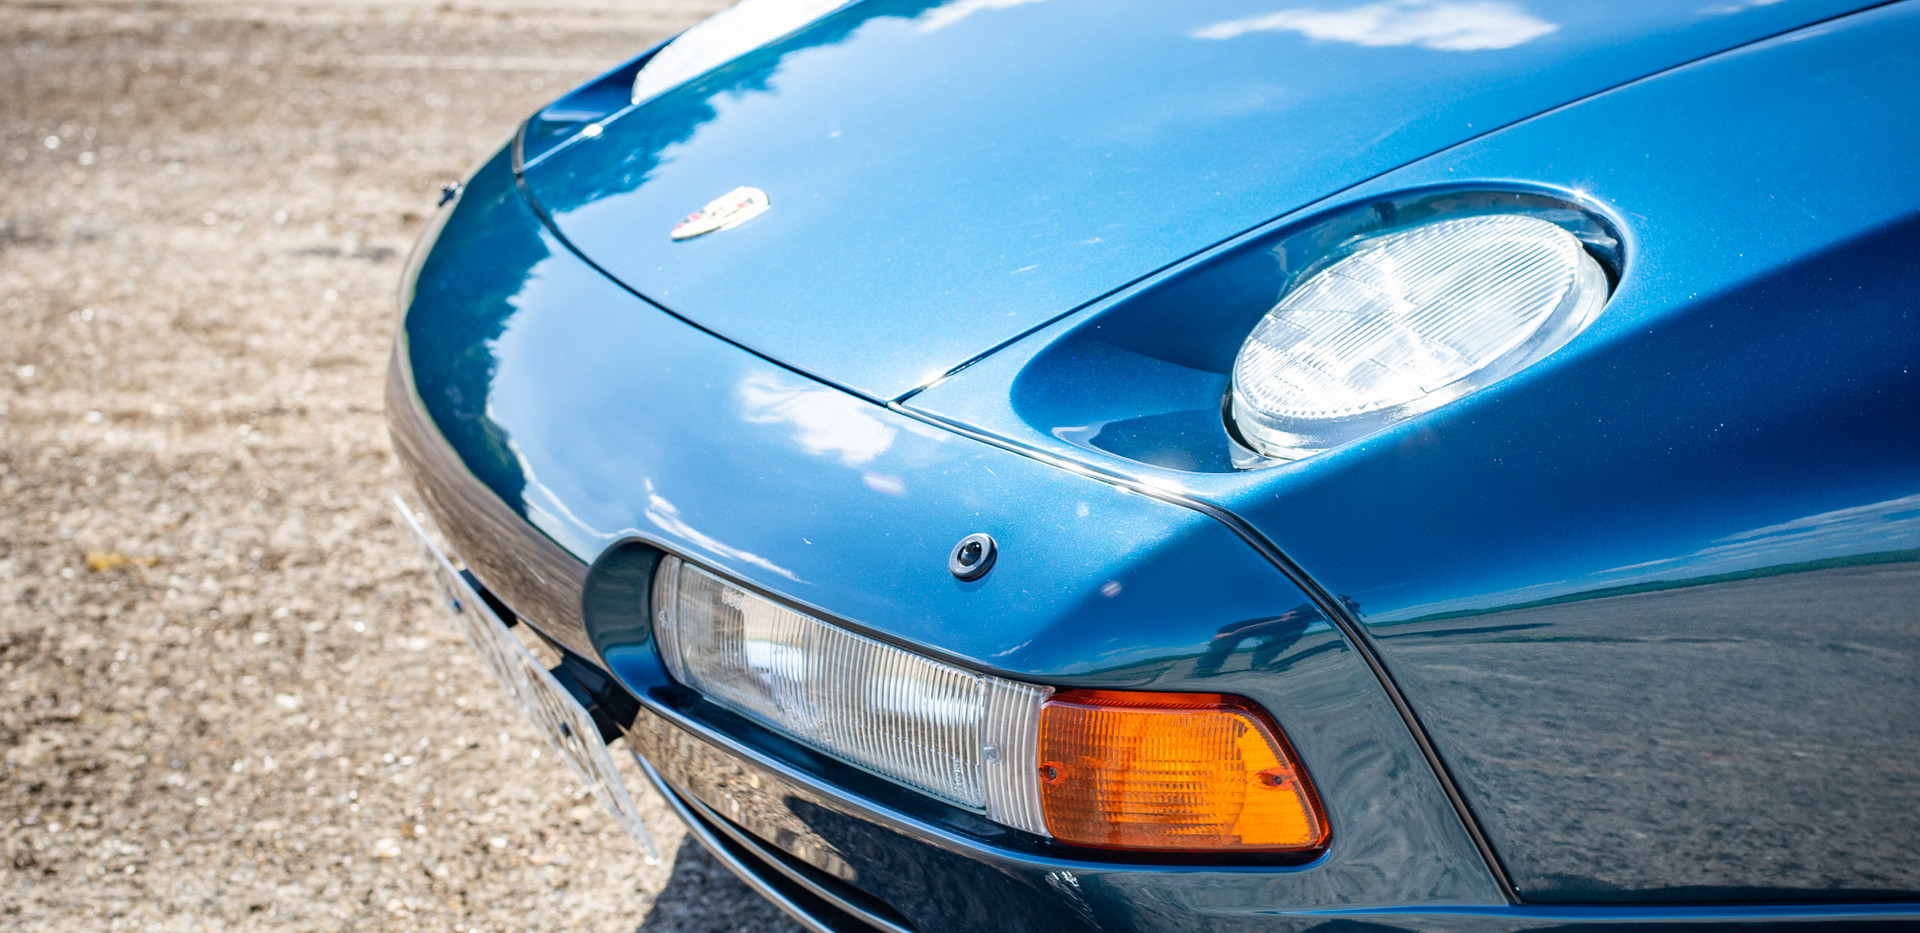 Porsche_928_ForSale Uk London-12.jpg